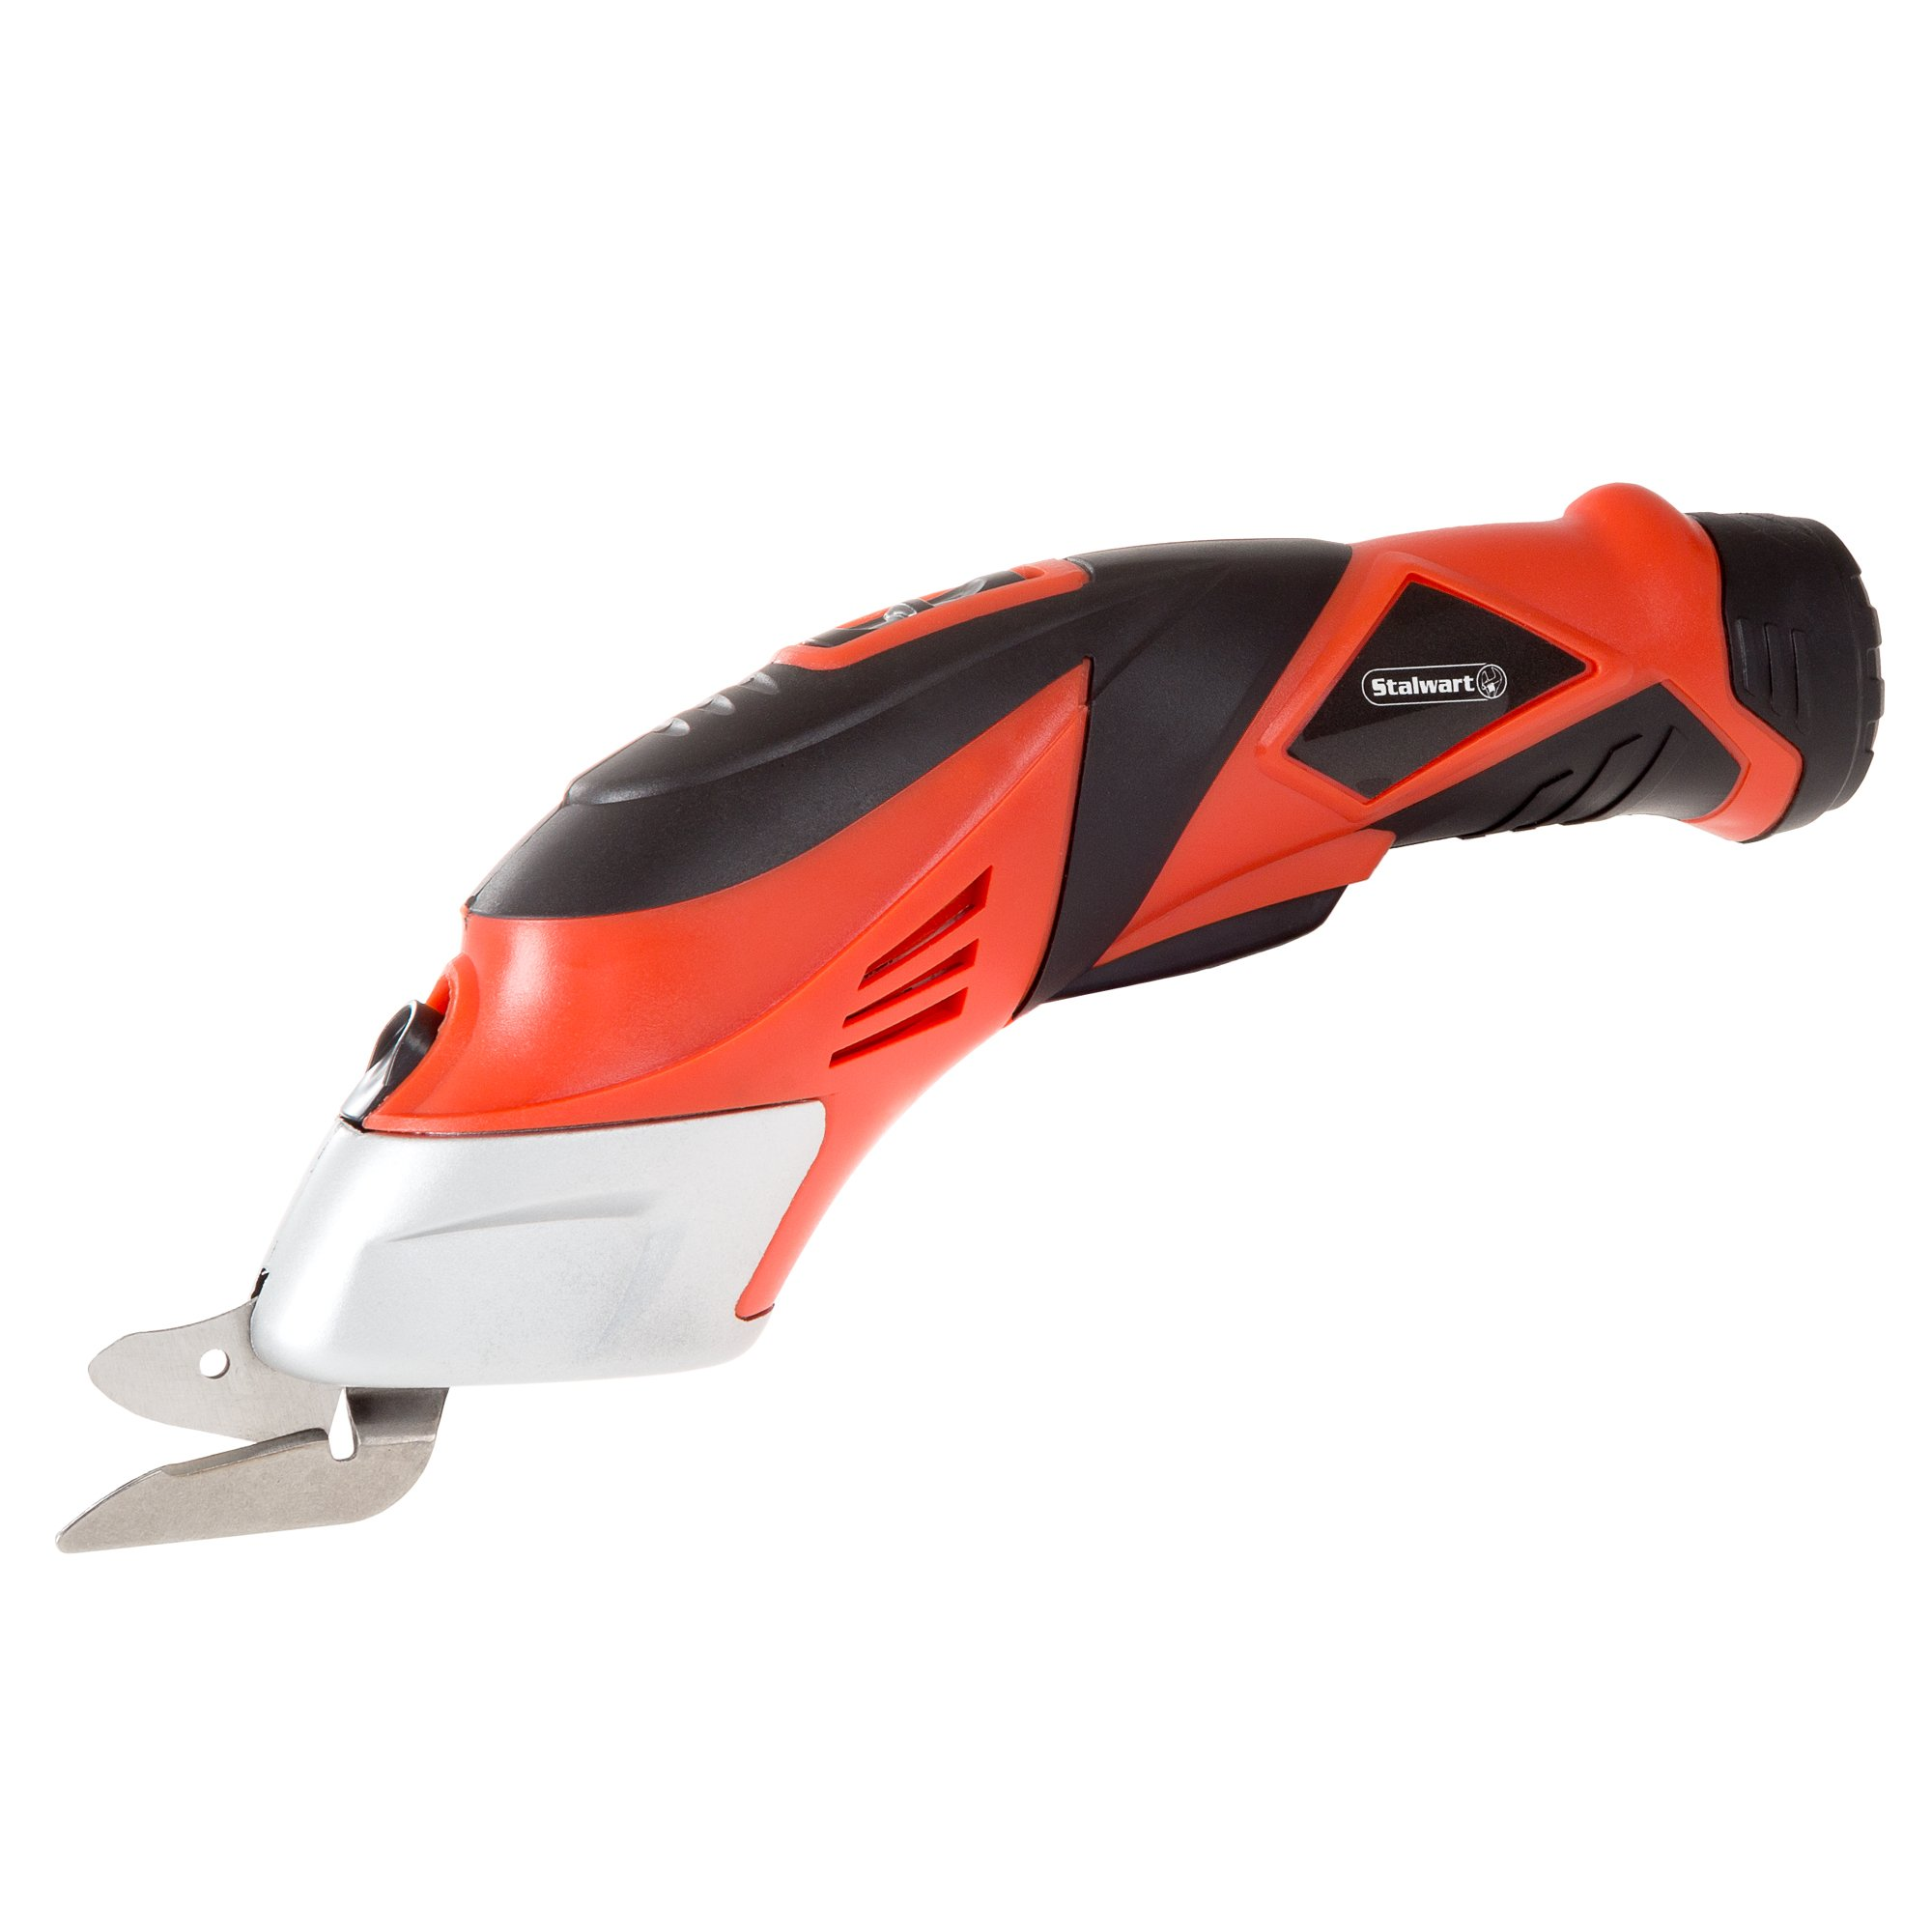 Cordless Power Scissors With Two Blades - Fabric, Leather, Carpet and Cardboard Cutter- 3.6V NiCad Lithium Ion Rechargeable Battery By Stalwart Red